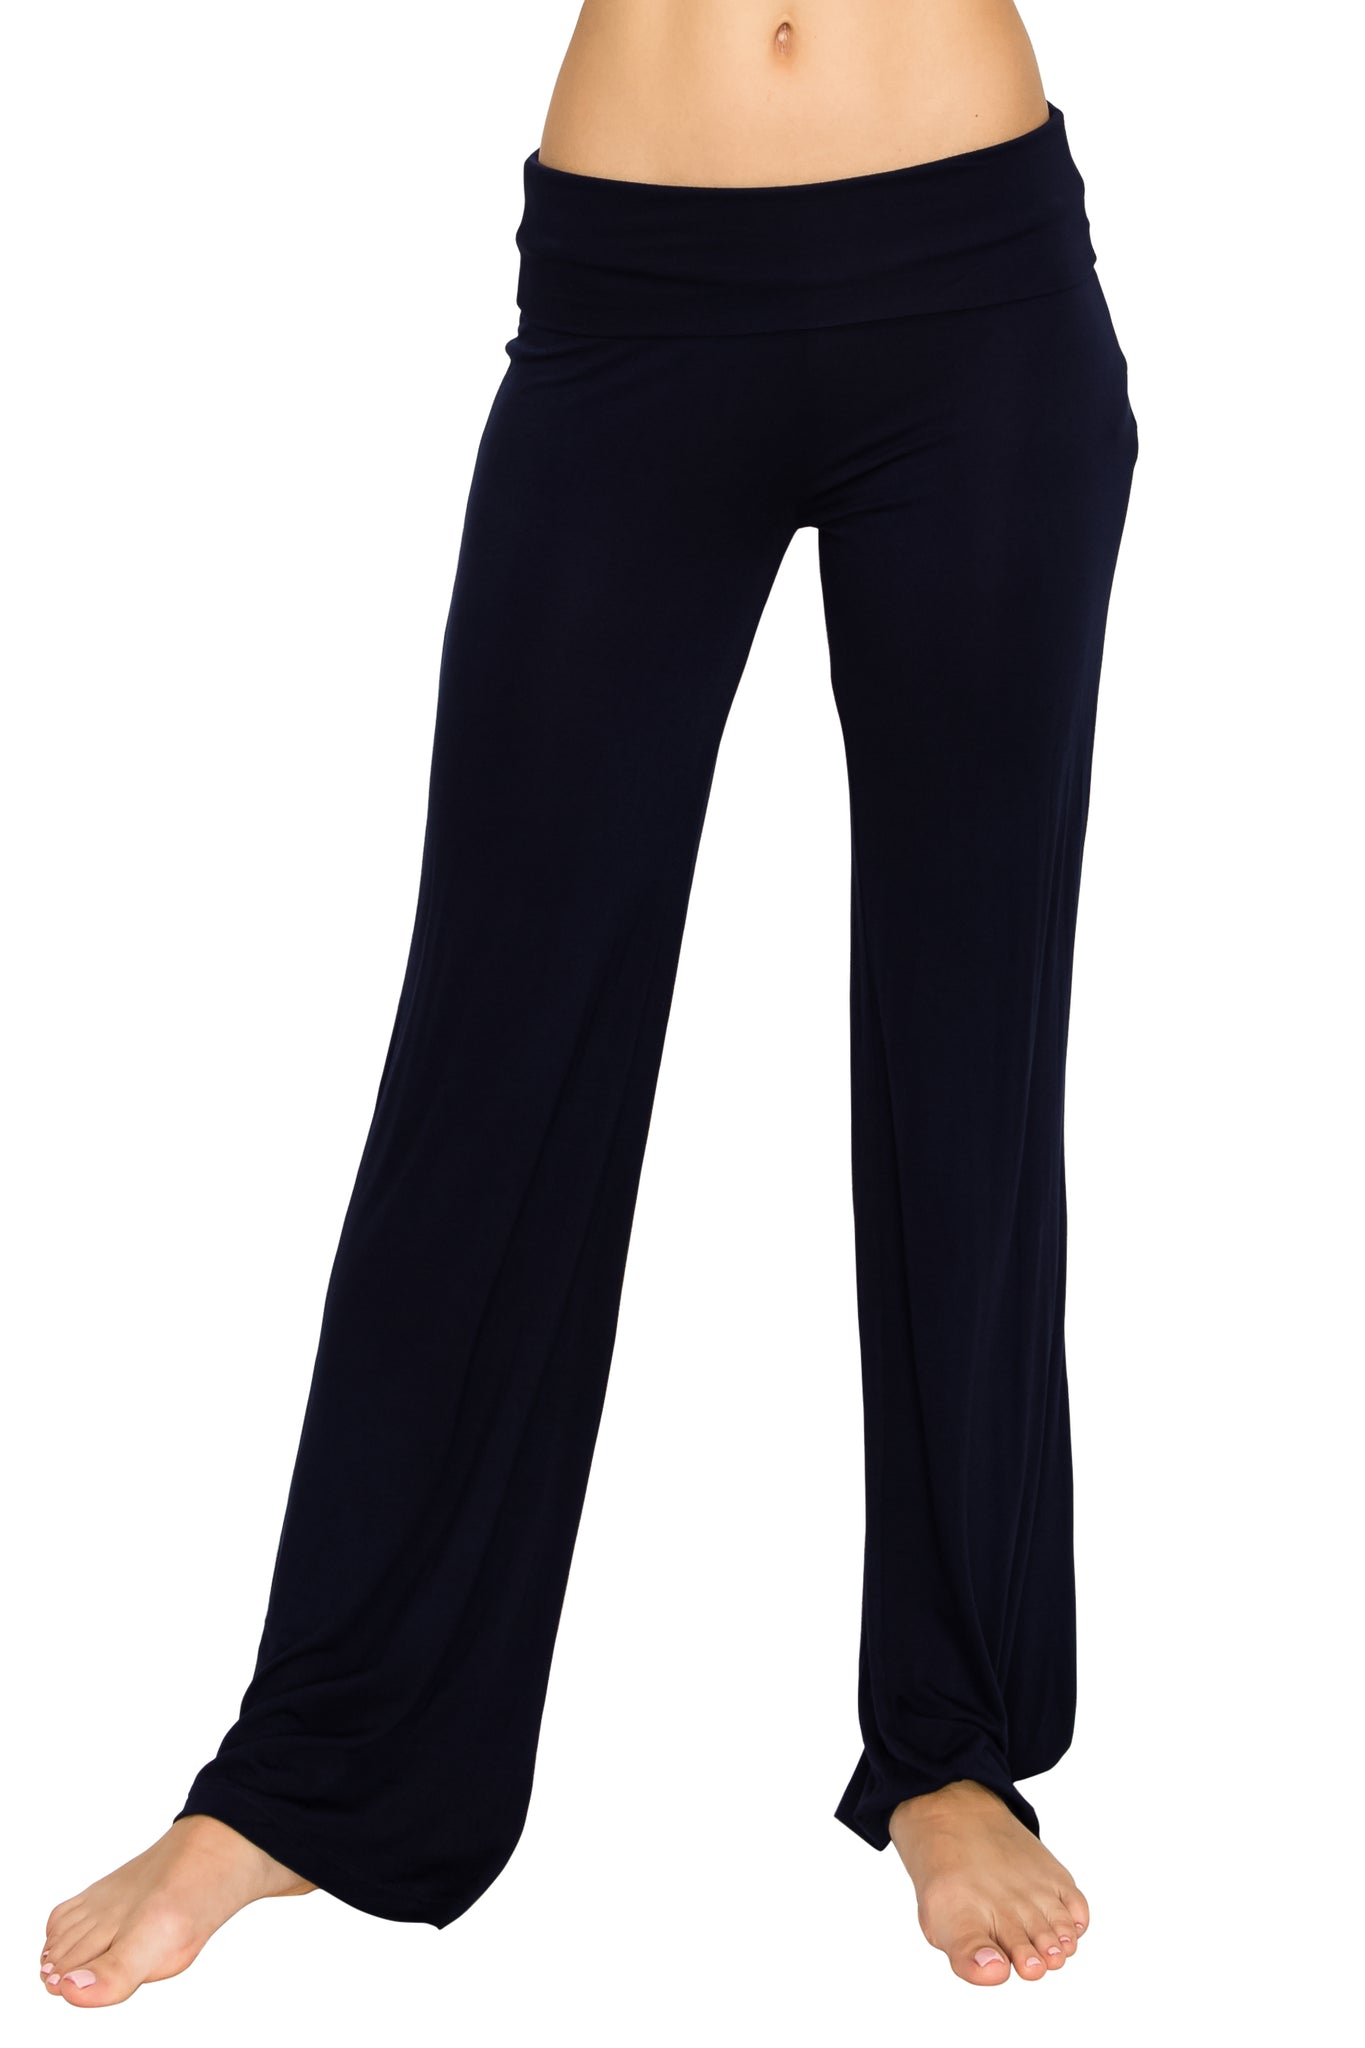 Navy Foldover Yoga Pants - Poplooks